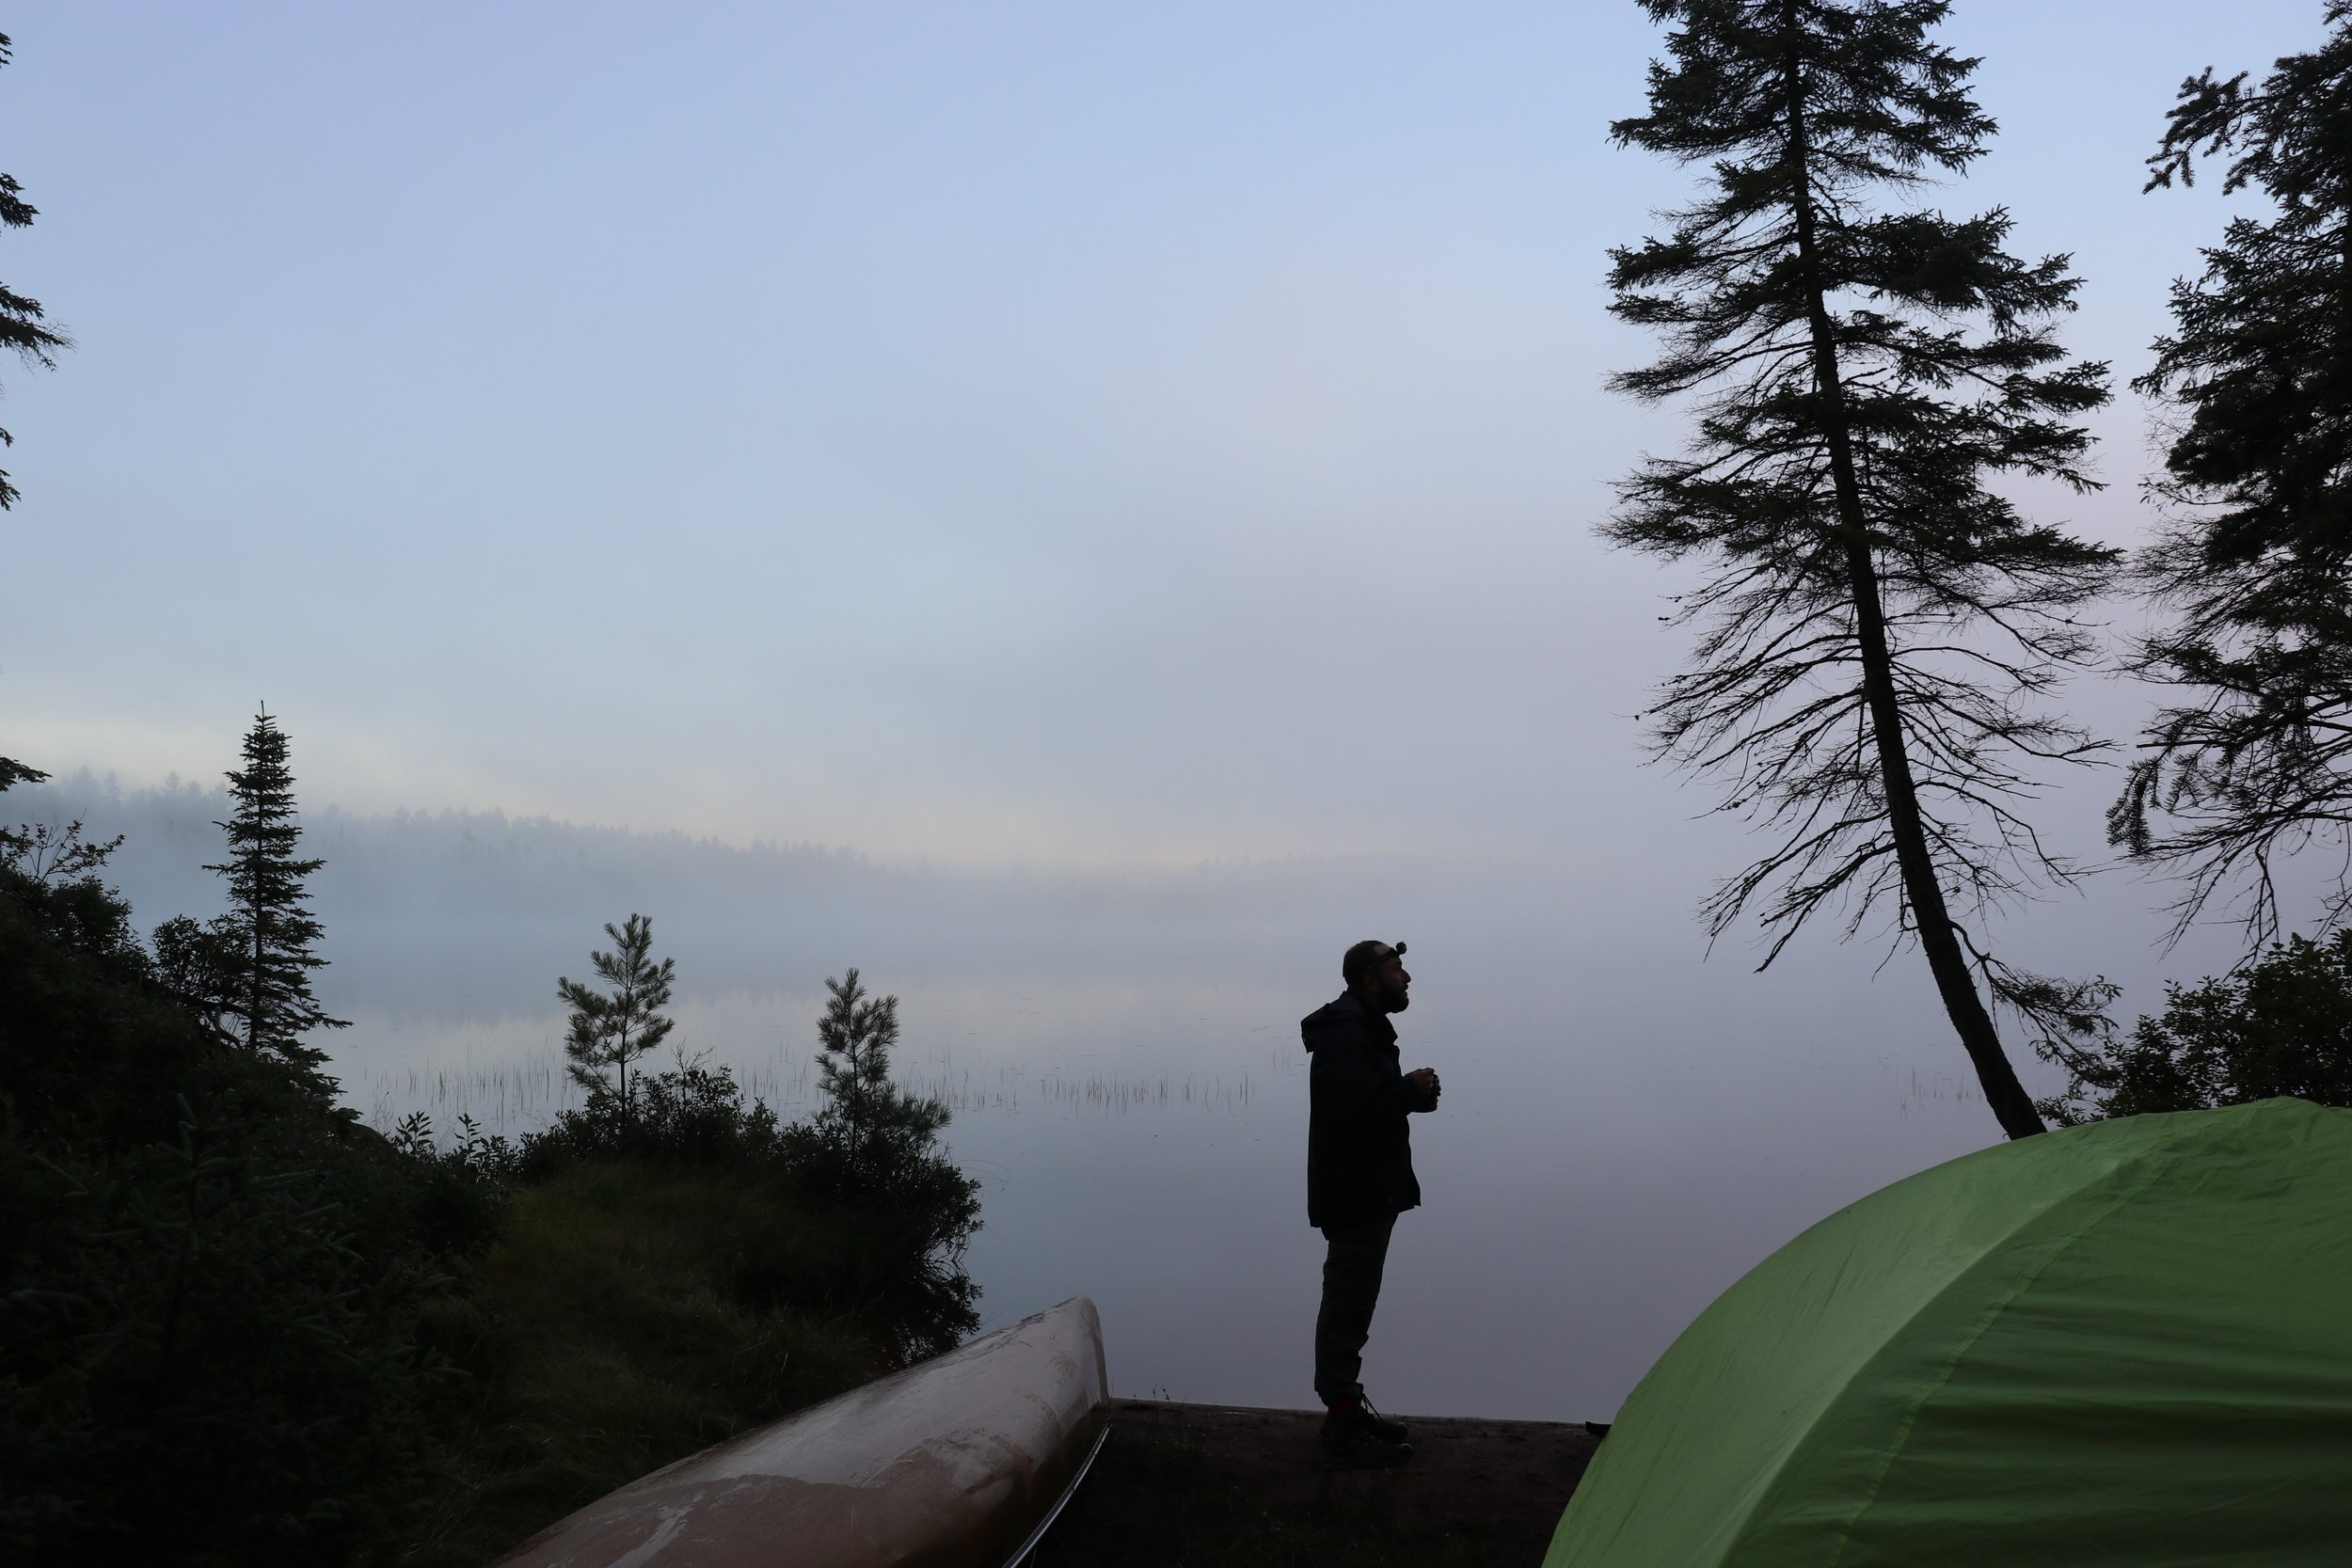 Camping at the end of the 5km portage going into Bonfield Lake